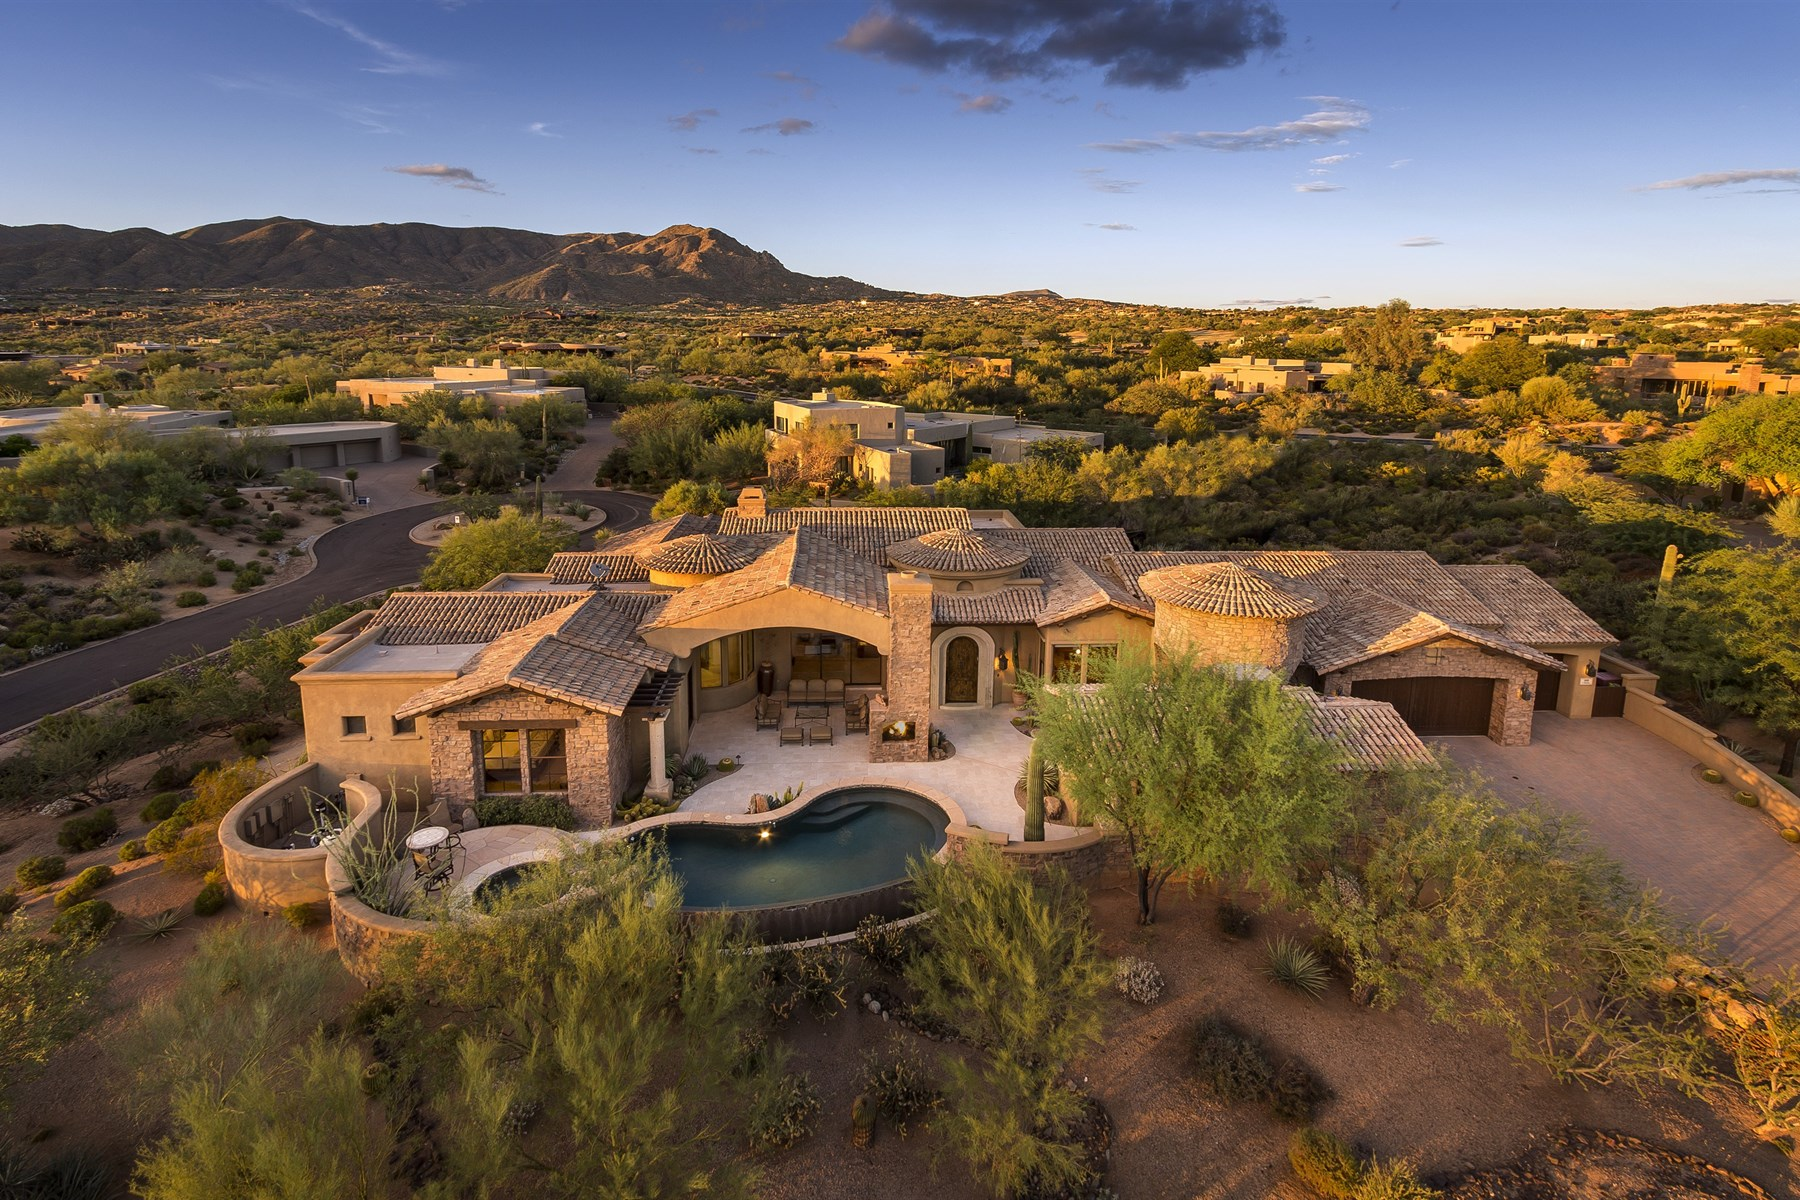 Single Family Home for Sale at Custom home designed by renowned home designer Beaux Graffin 10189 E Palo Brea Dr Scottsdale, Arizona, 85262 United States